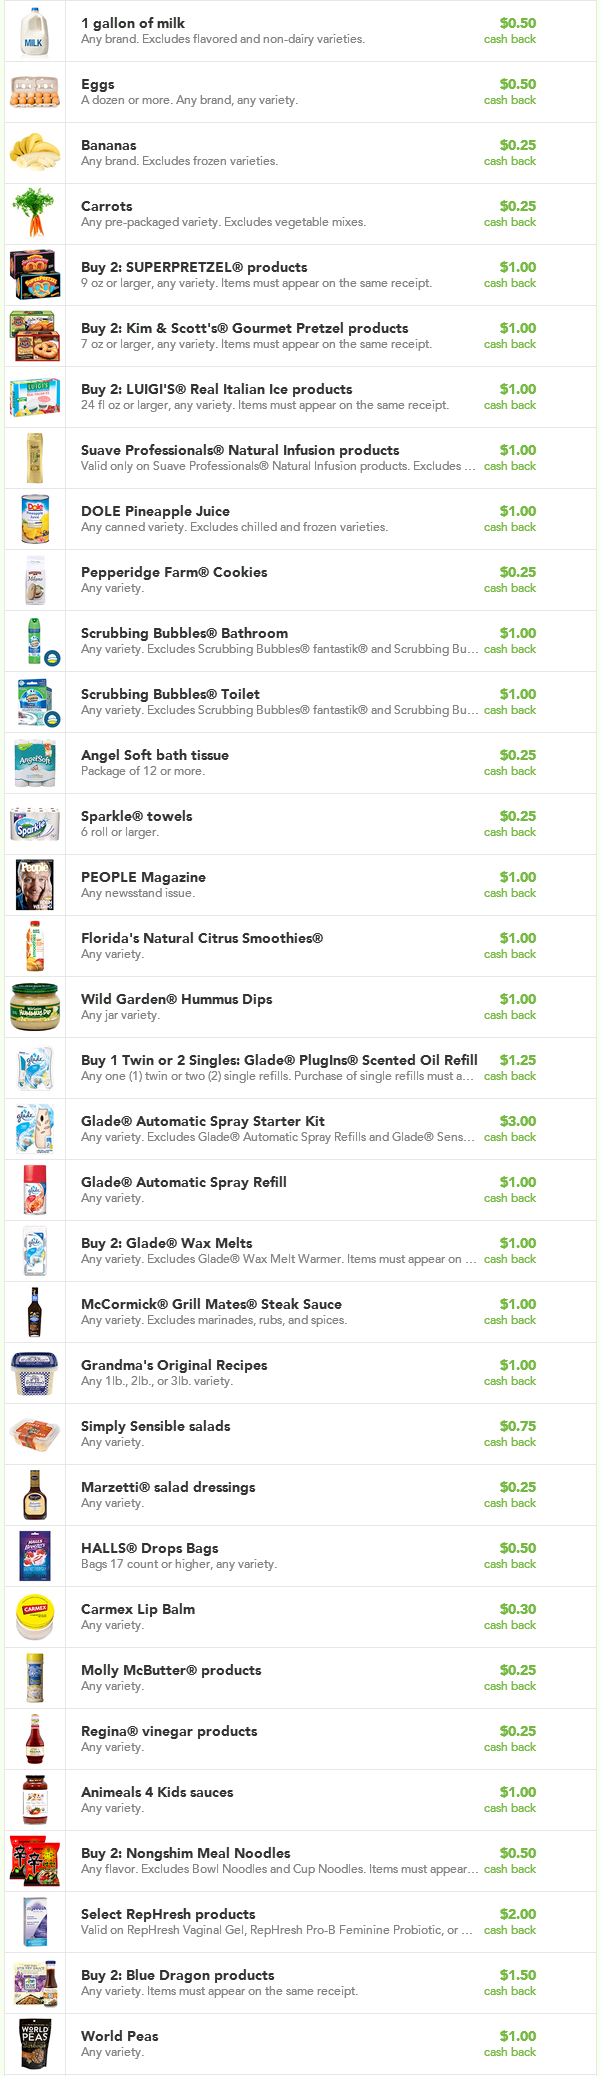 check51 aug 14 NEW Checkout 51 Offers: Carrots, Bananas, Suave, and More!